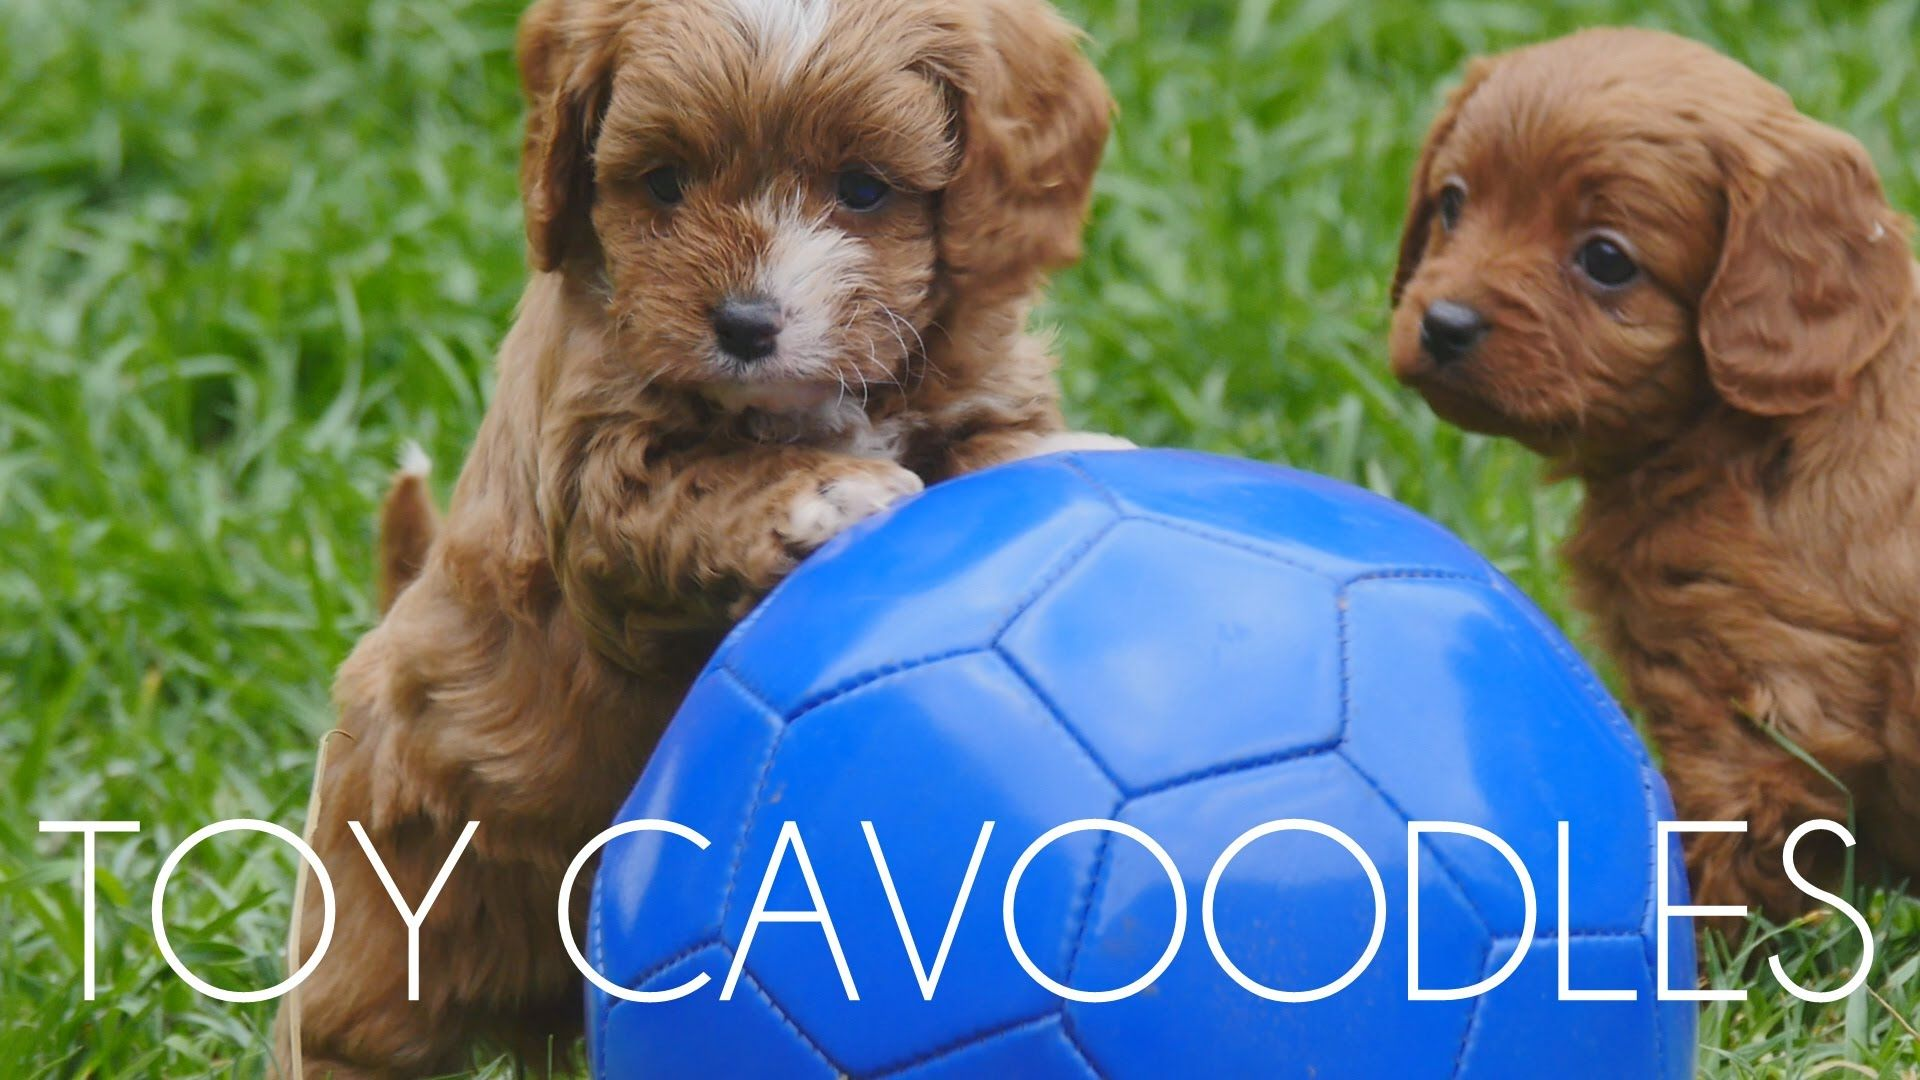 Chevromist Cavoodle Puppies May 2015 Puppies Pinterest